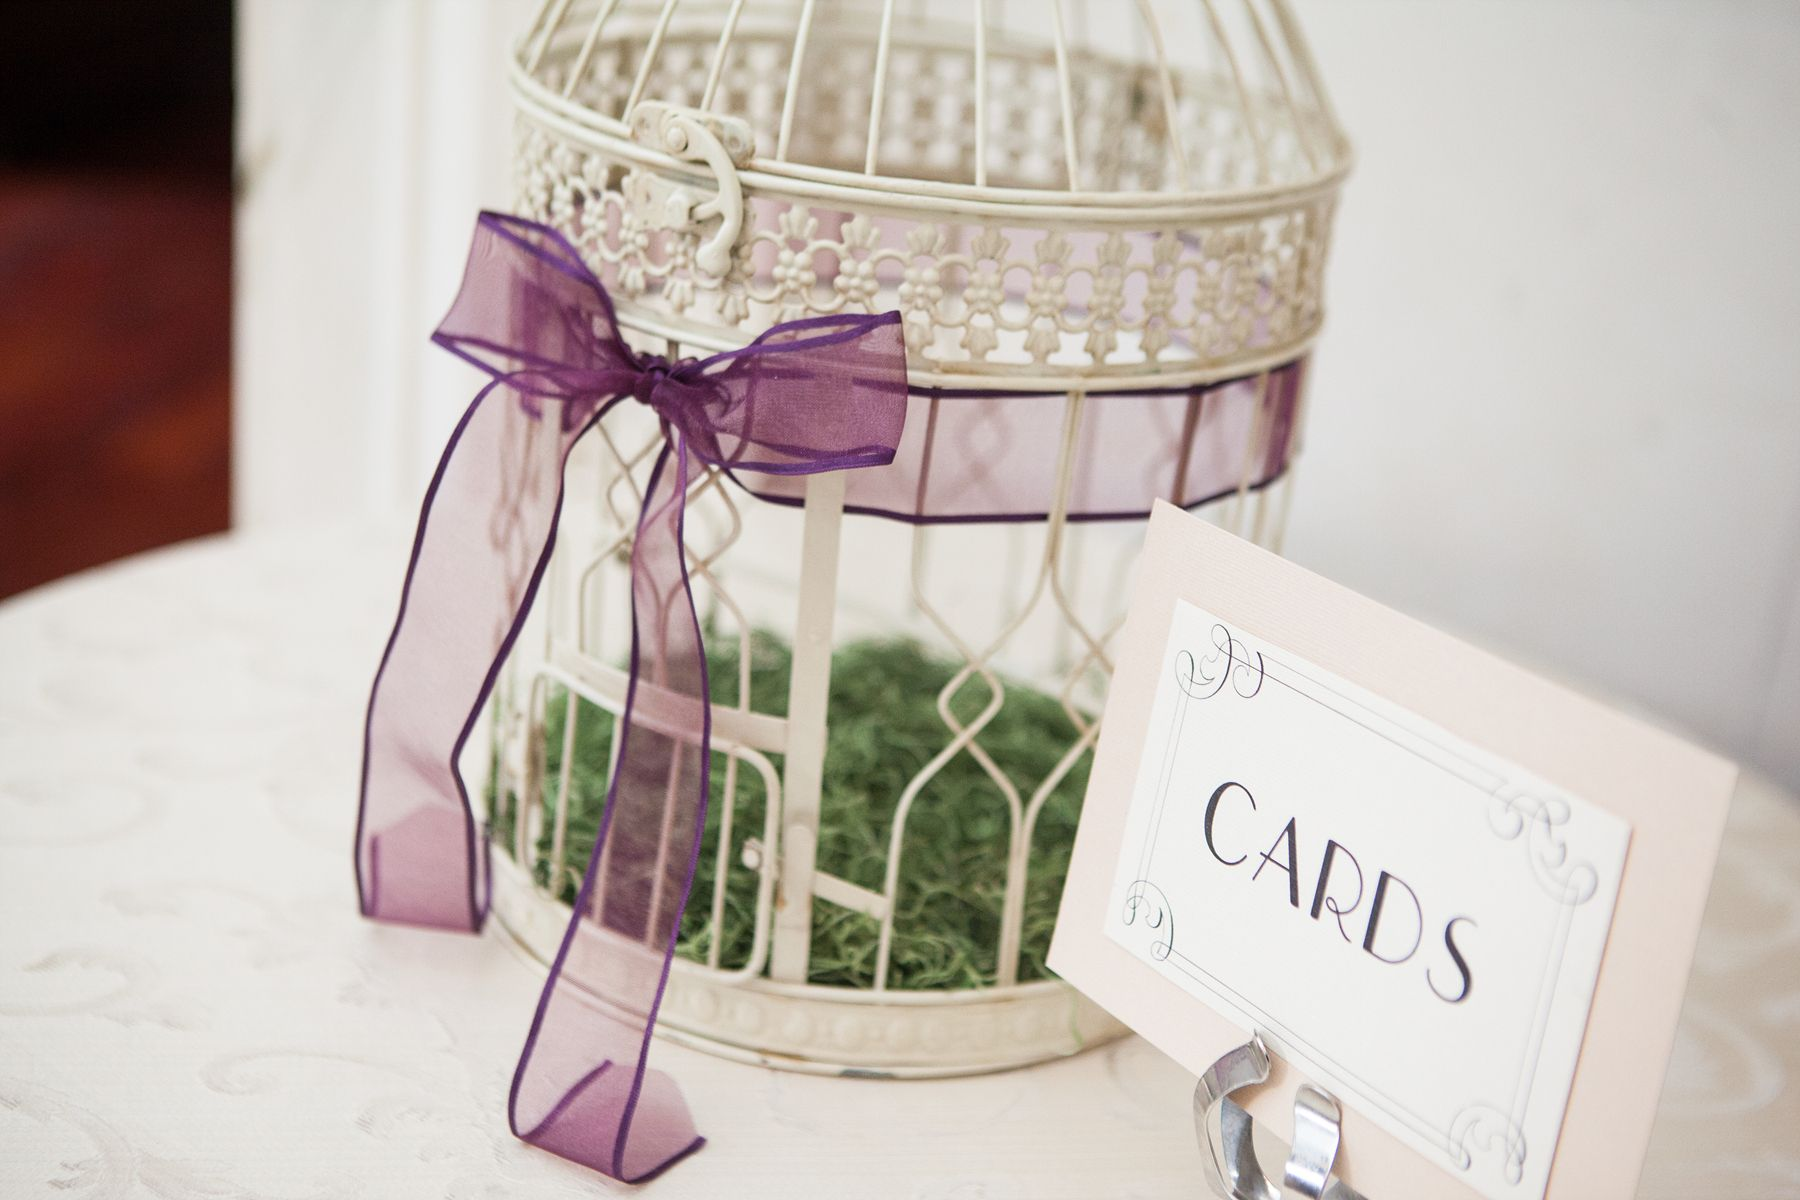 NYIT de Seversky Mansion wedding cards birdcage detail New York